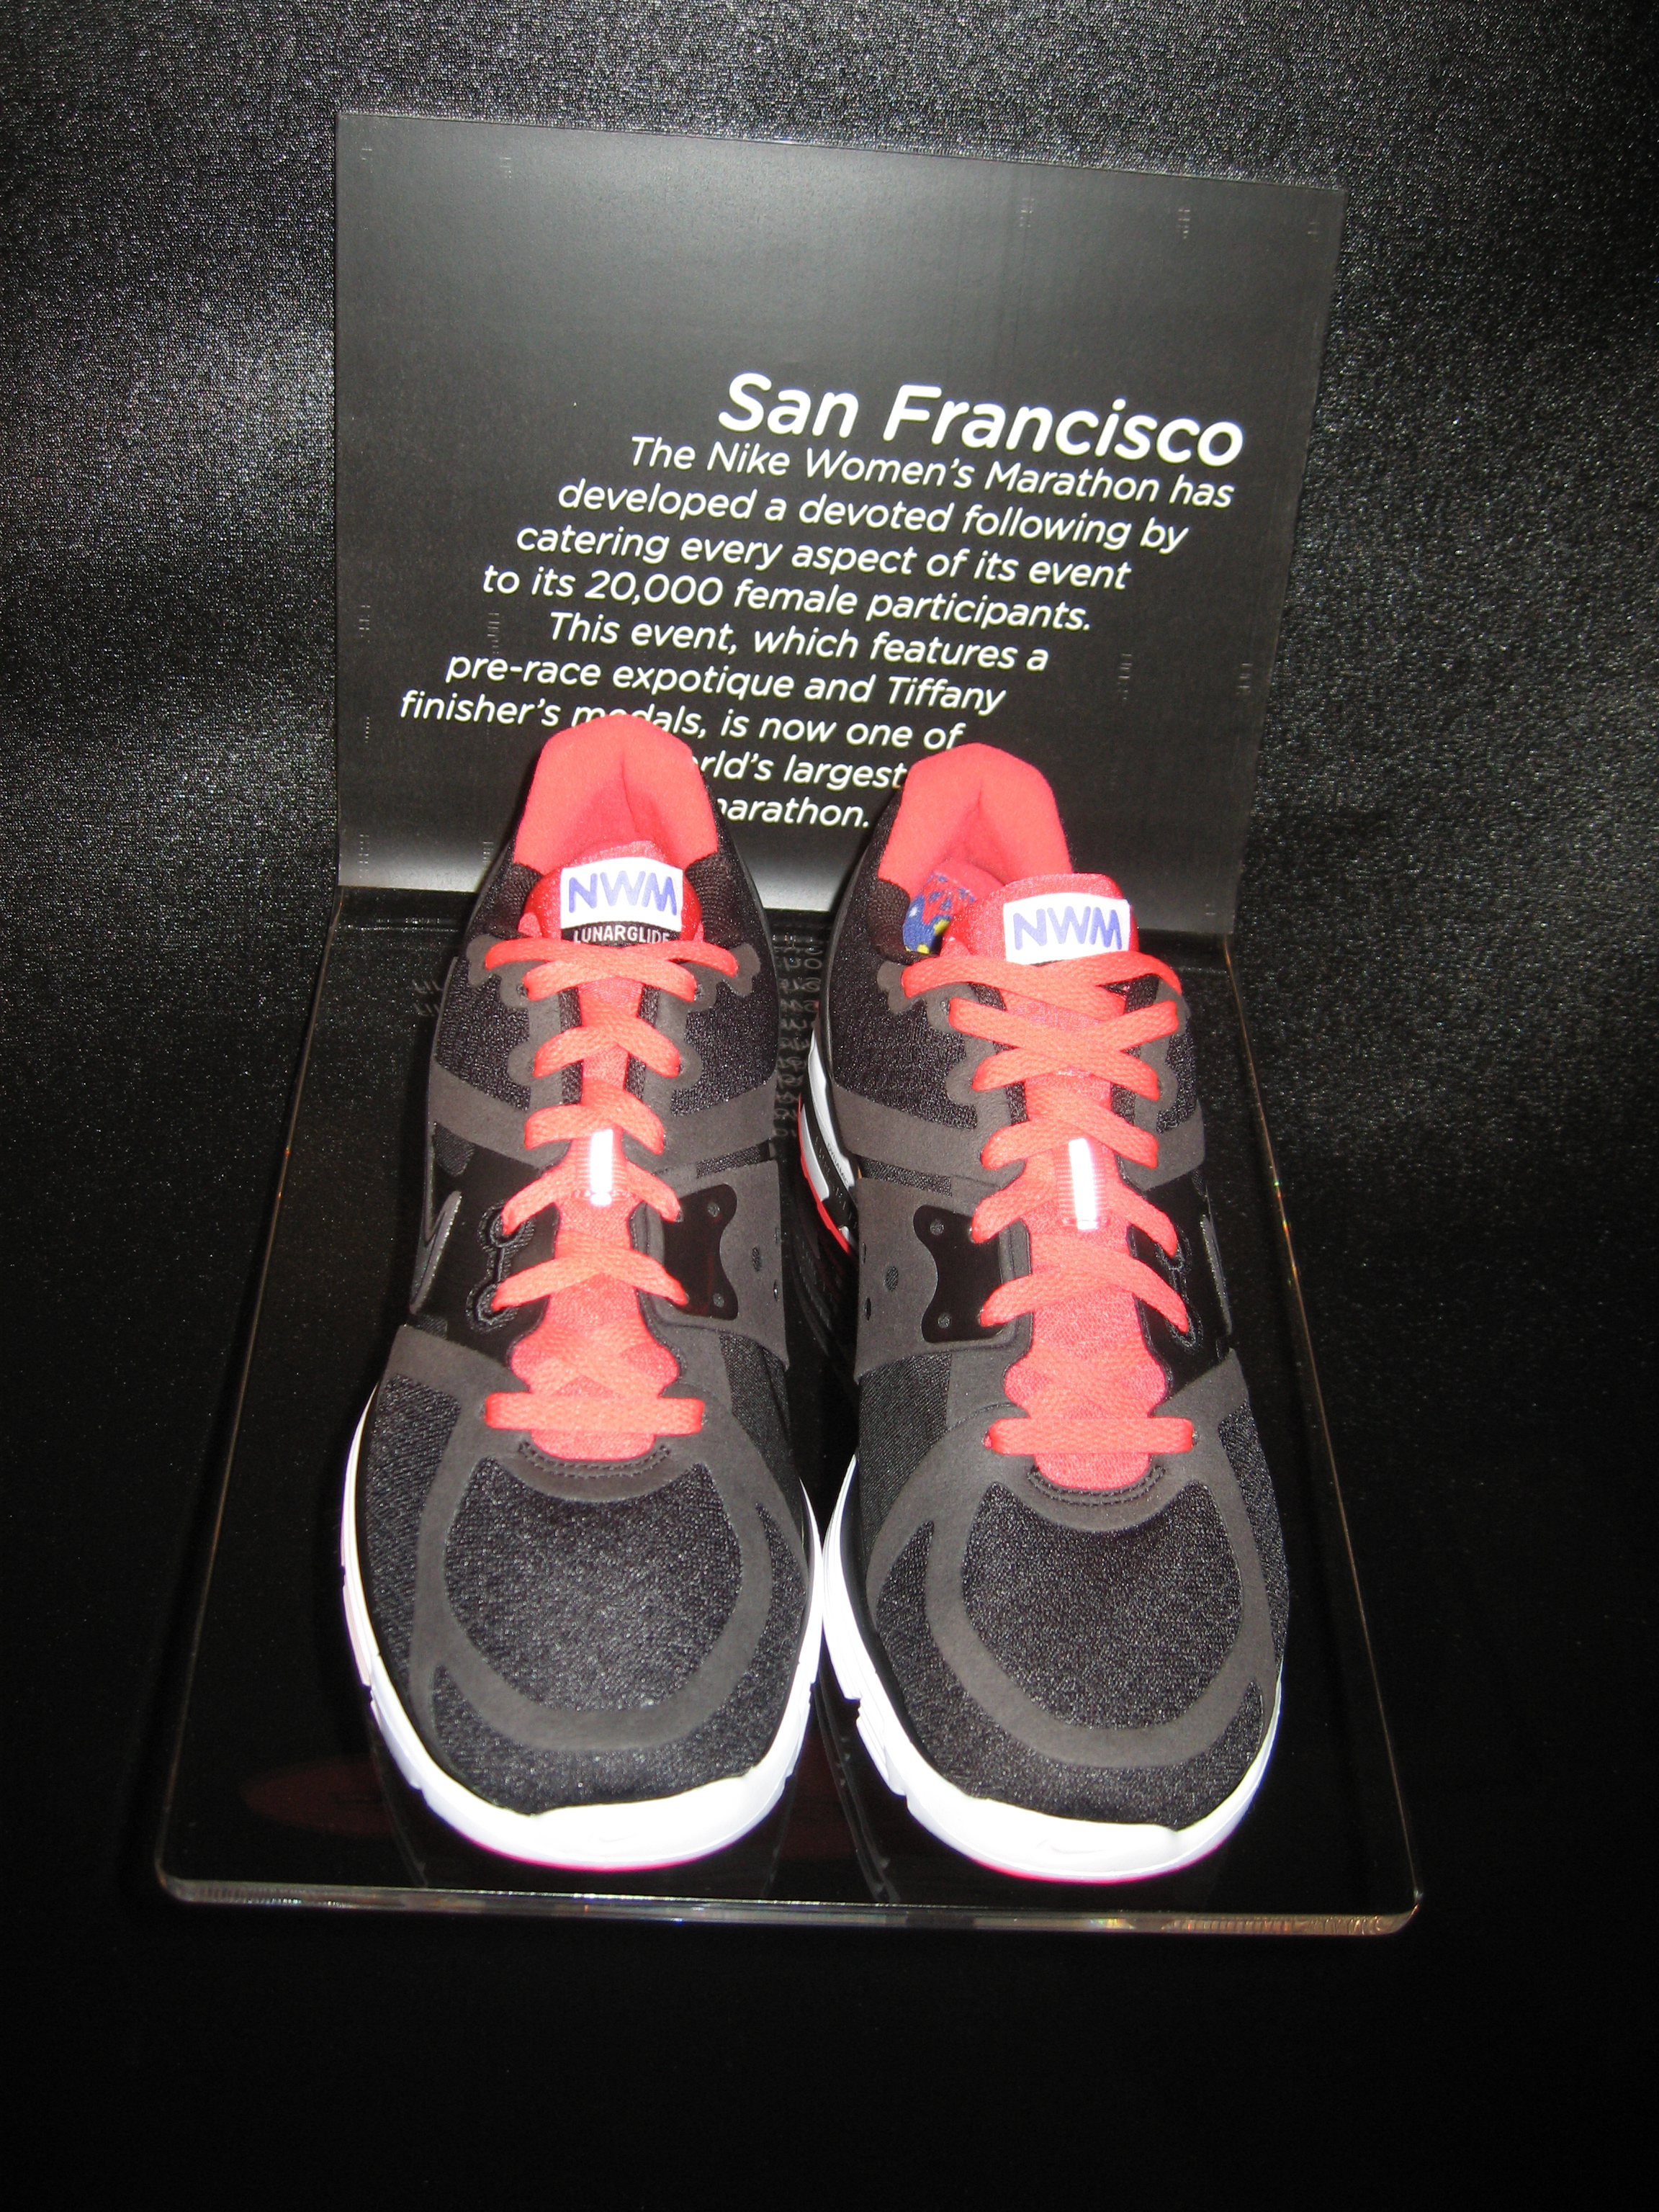 Line of Marathon Shoes: San Fancisco